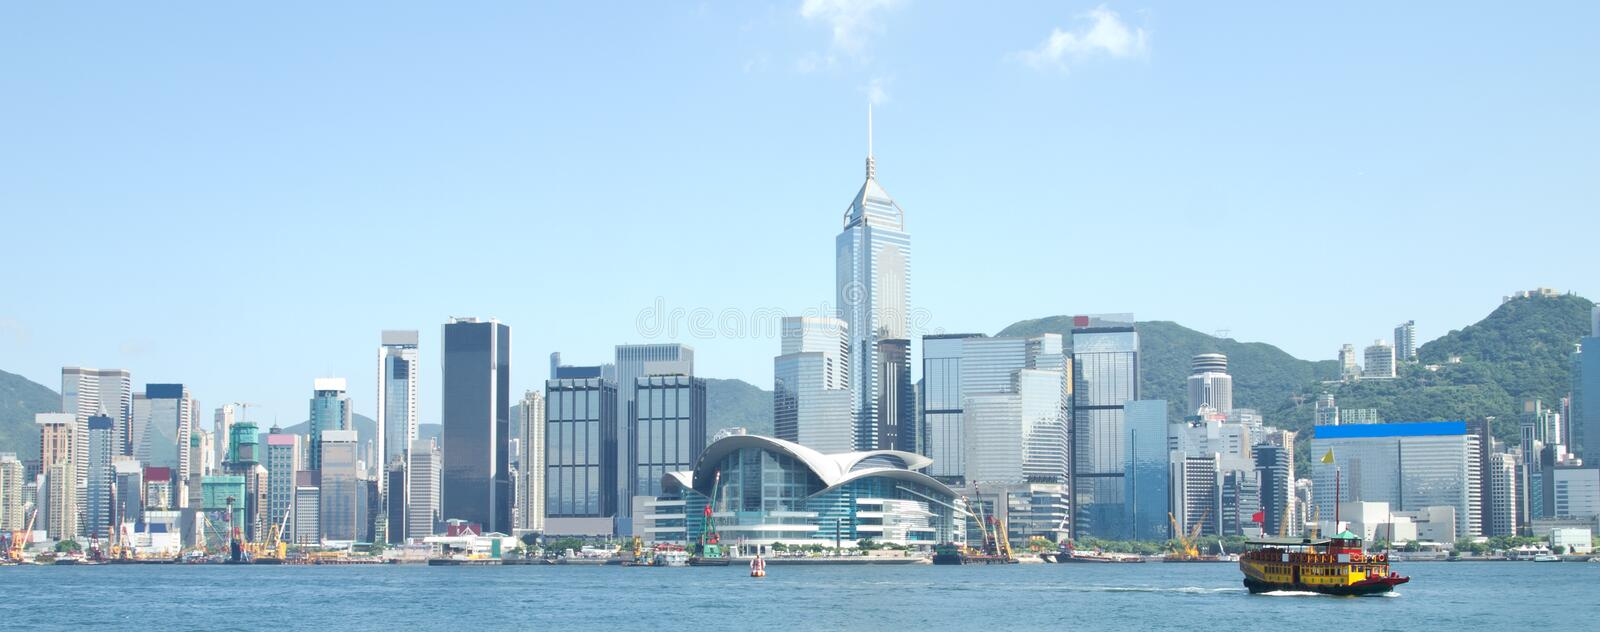 Download Hong Kong Victoria Harbour stock image. Image of modern - 20720001